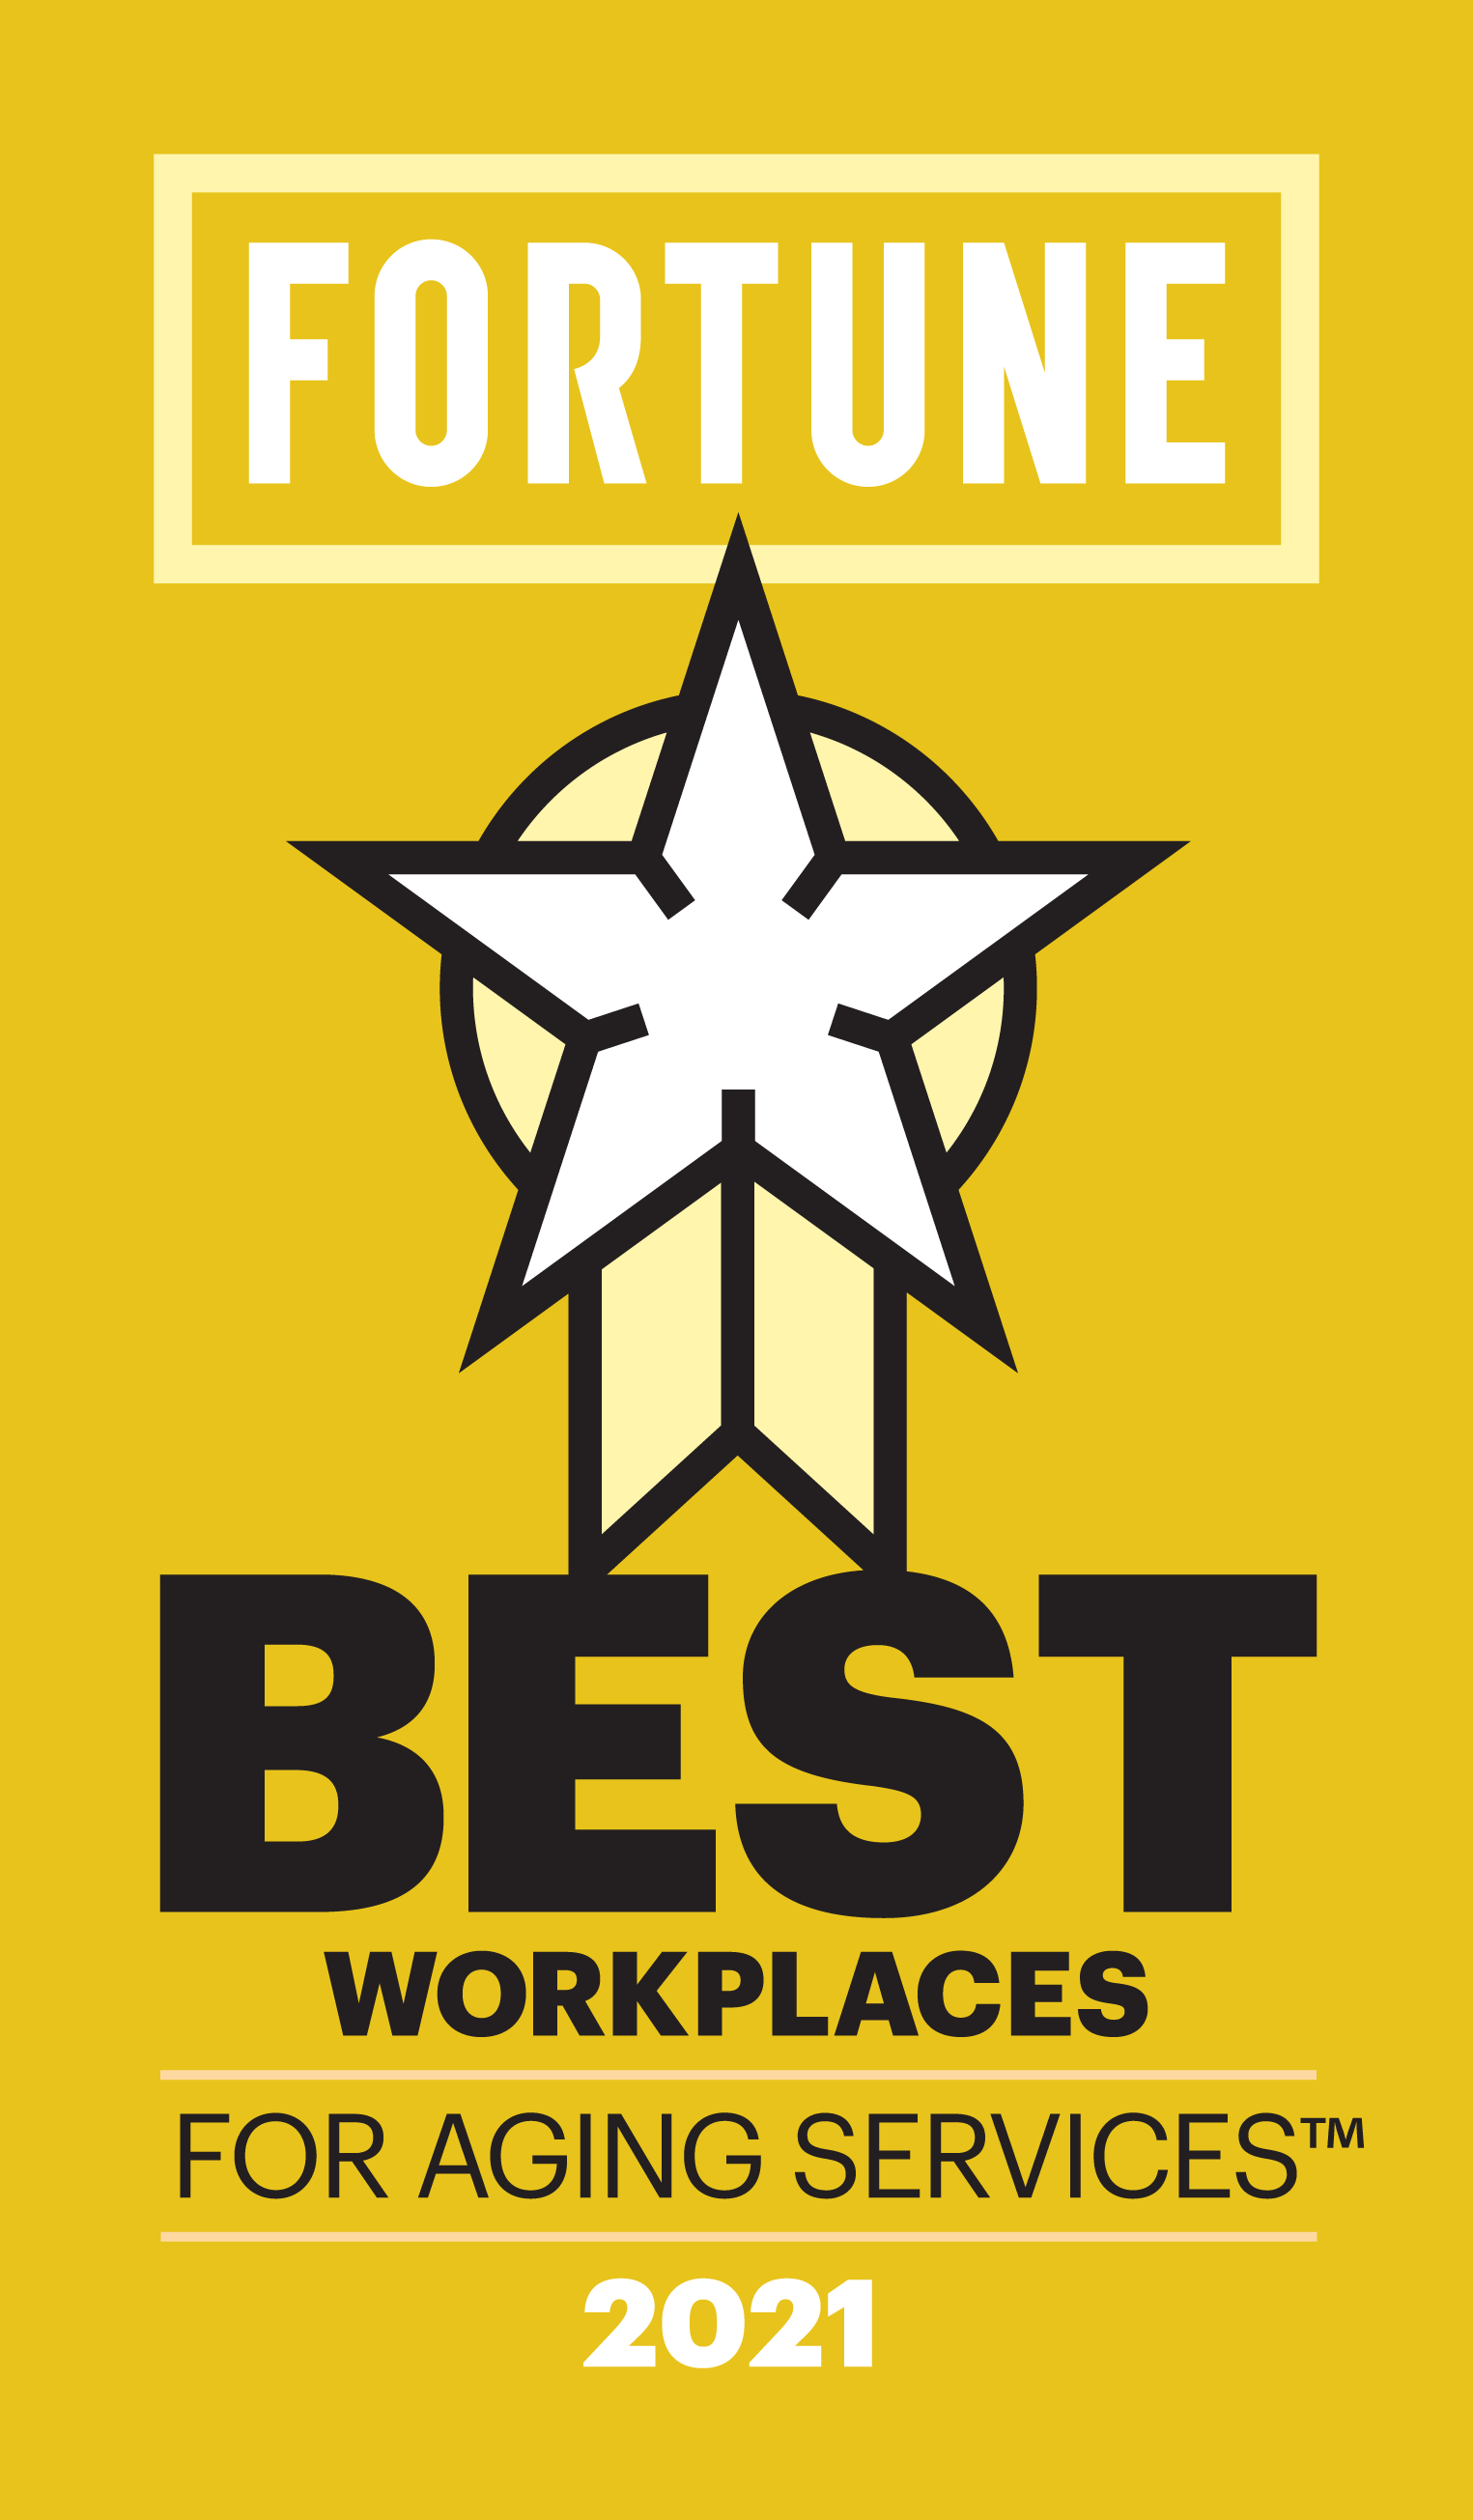 Fortune Best Workplaces for aging services 2021 logo